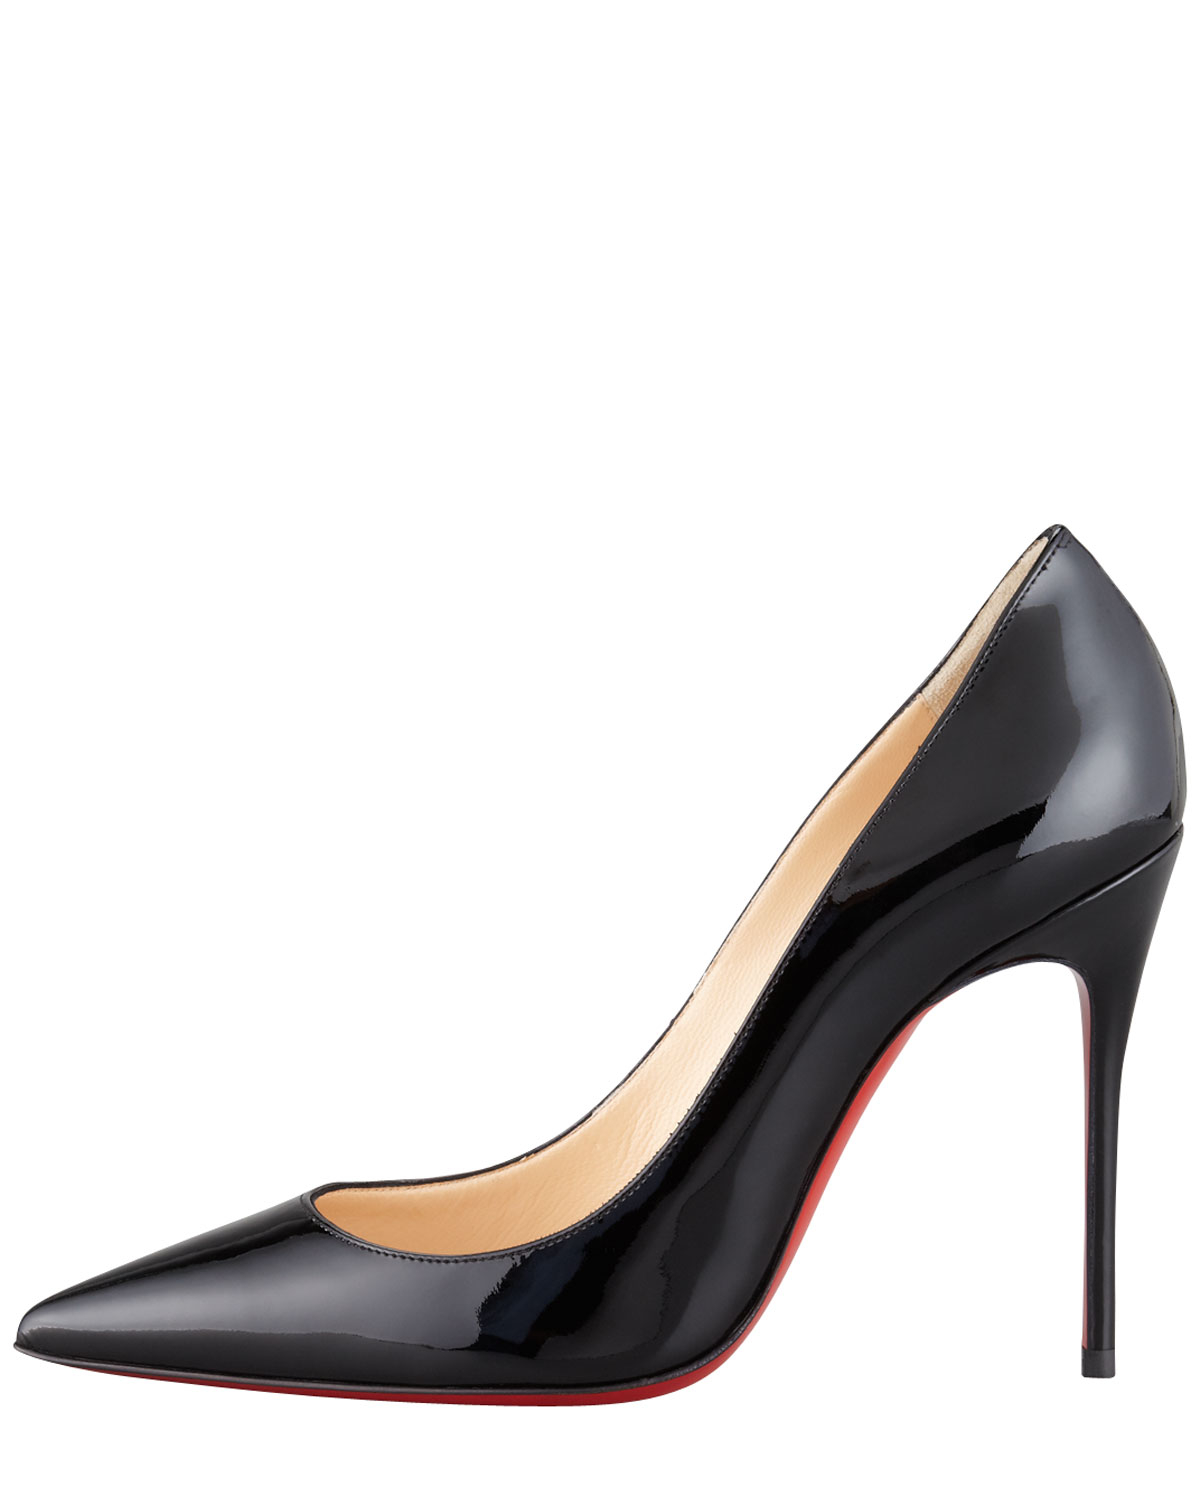 huge discount 11bd8 ee982 Christian Louboutin Black Decollete Patent Leather Stiletto Red Sole Pump